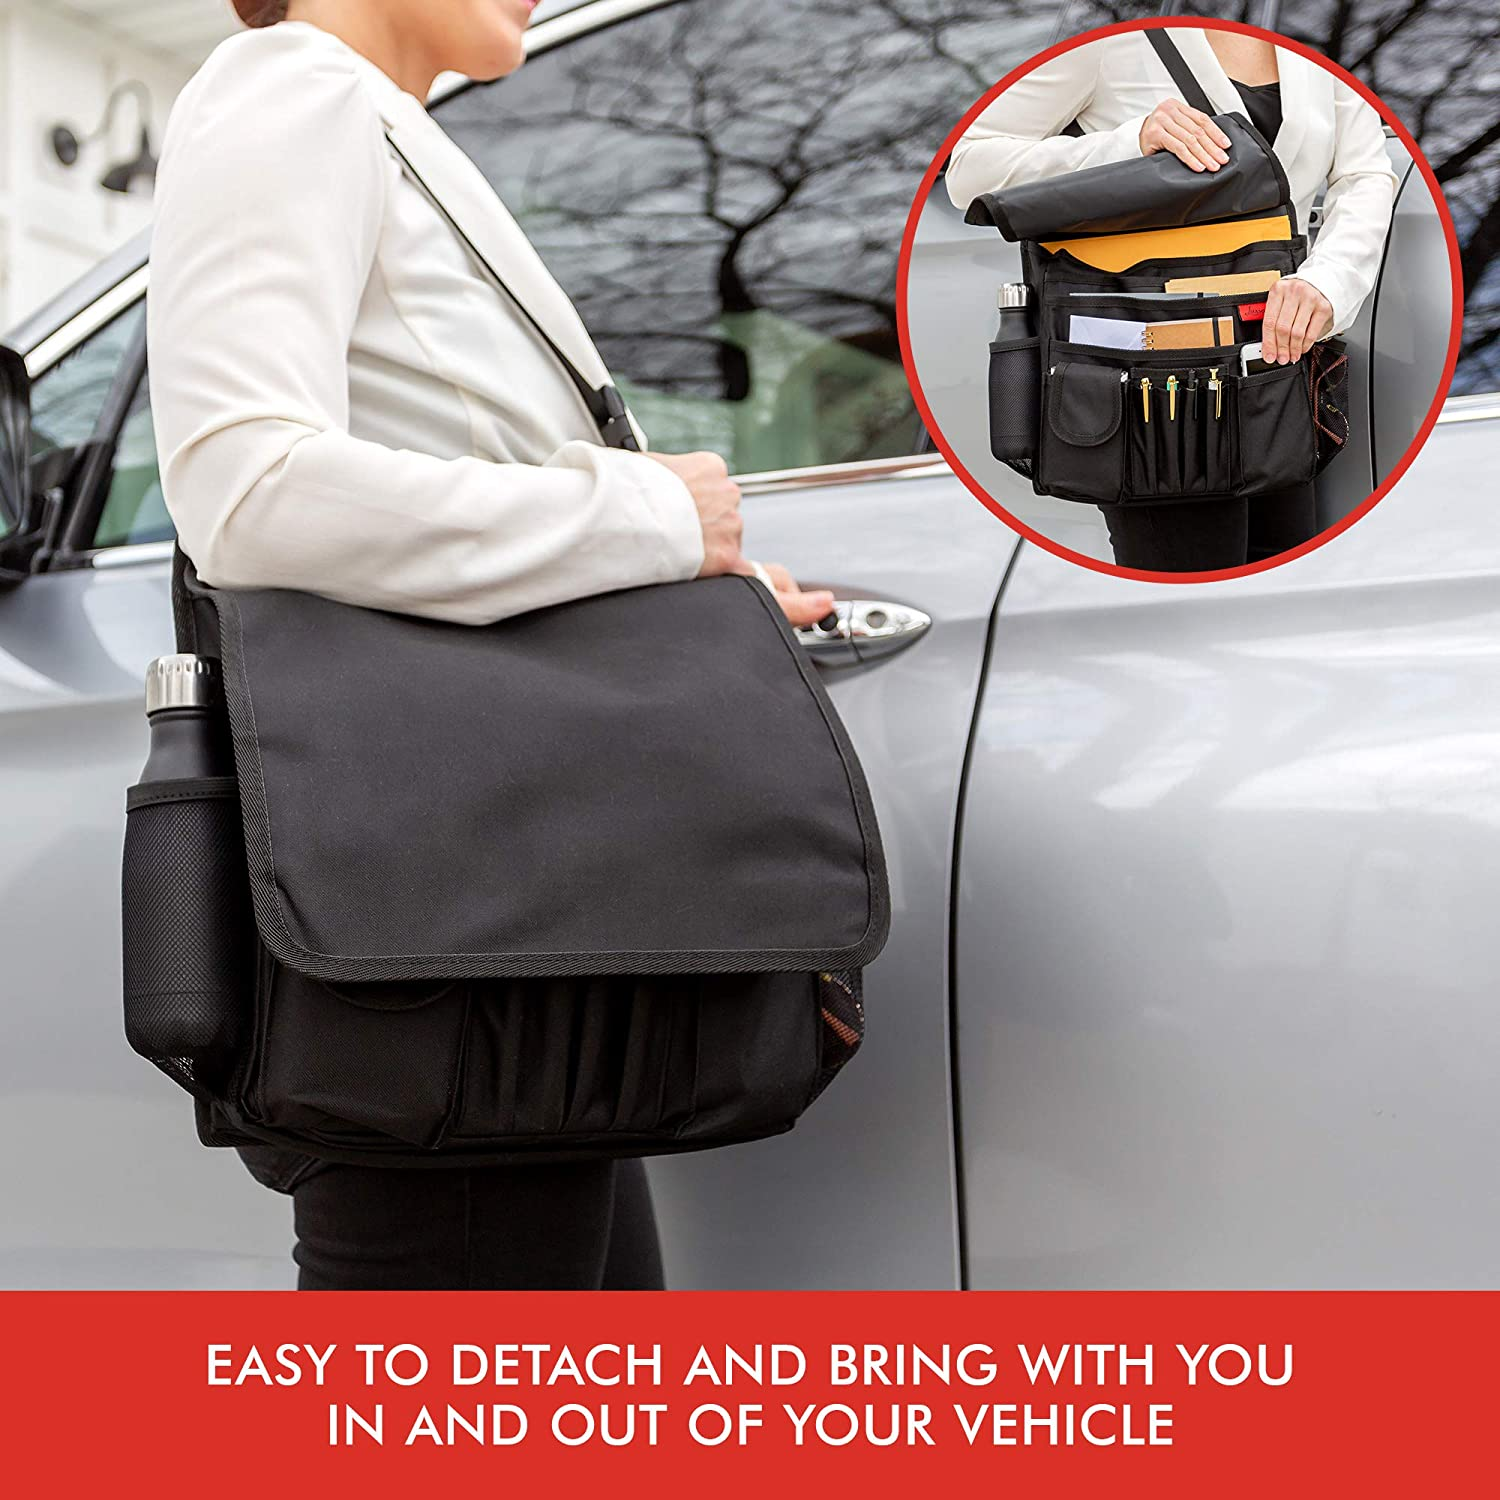 Mobile//Car Office Organizer Lusso Gear Car Front Seat Organizer Fits Any Car//Truck Also for Law Enforcement//Police//Patrol Bag Storage for Laptop//iPad//Office Supplies /& More Strong /& Durable